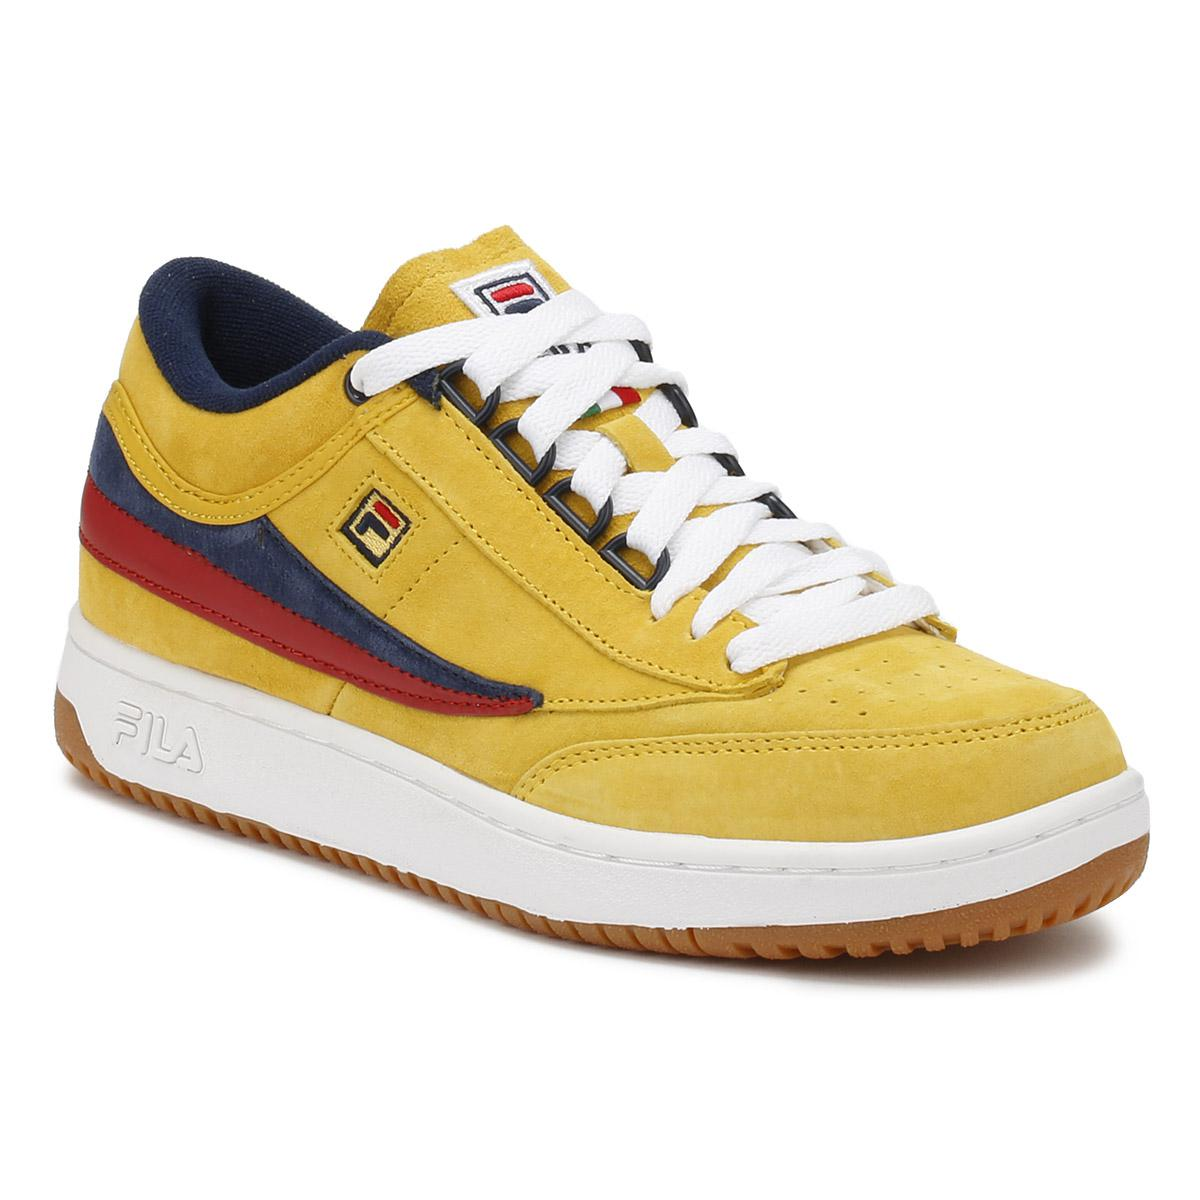 Fila Suede Mens Lemon Chrome Yellow Original Fitness T1-mid ...